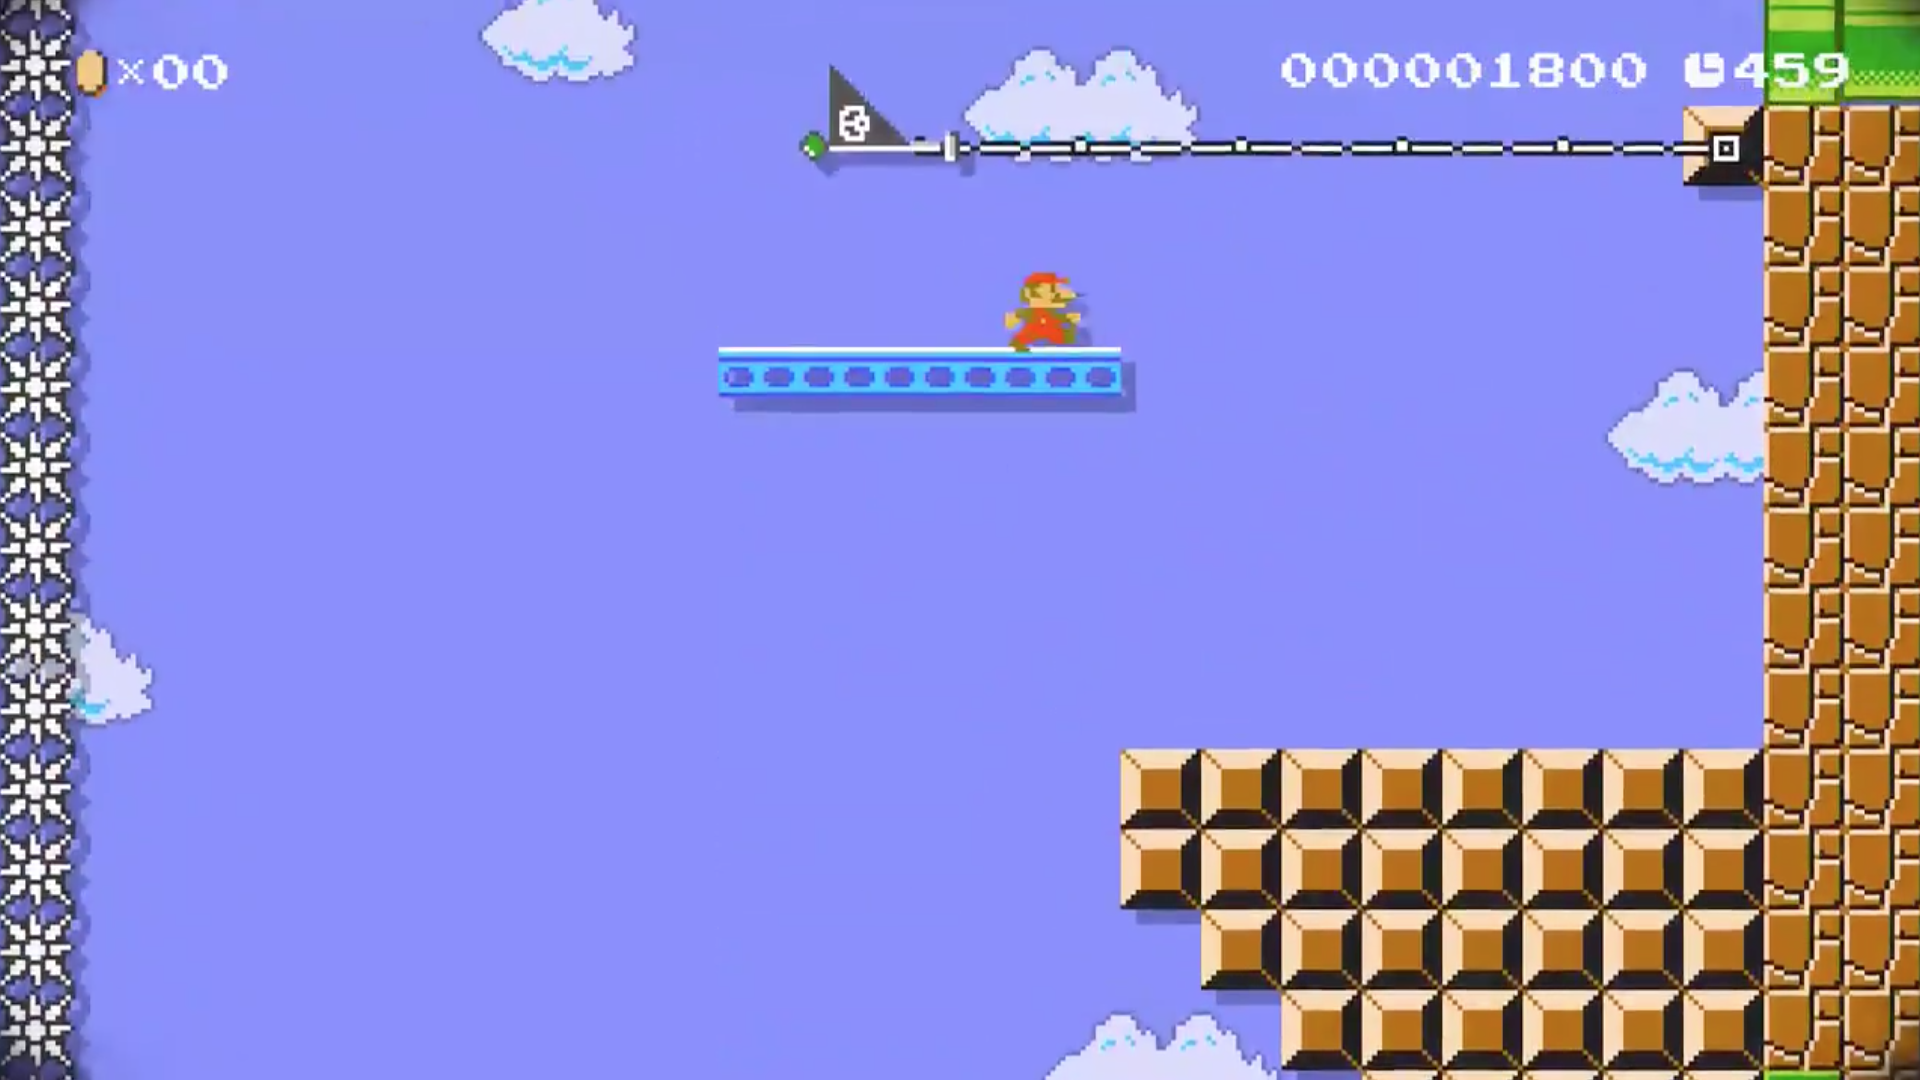 Screenshot of a Super Mario Maker 2 stage showing World 1-1 of Super Mario Bros. on its side.